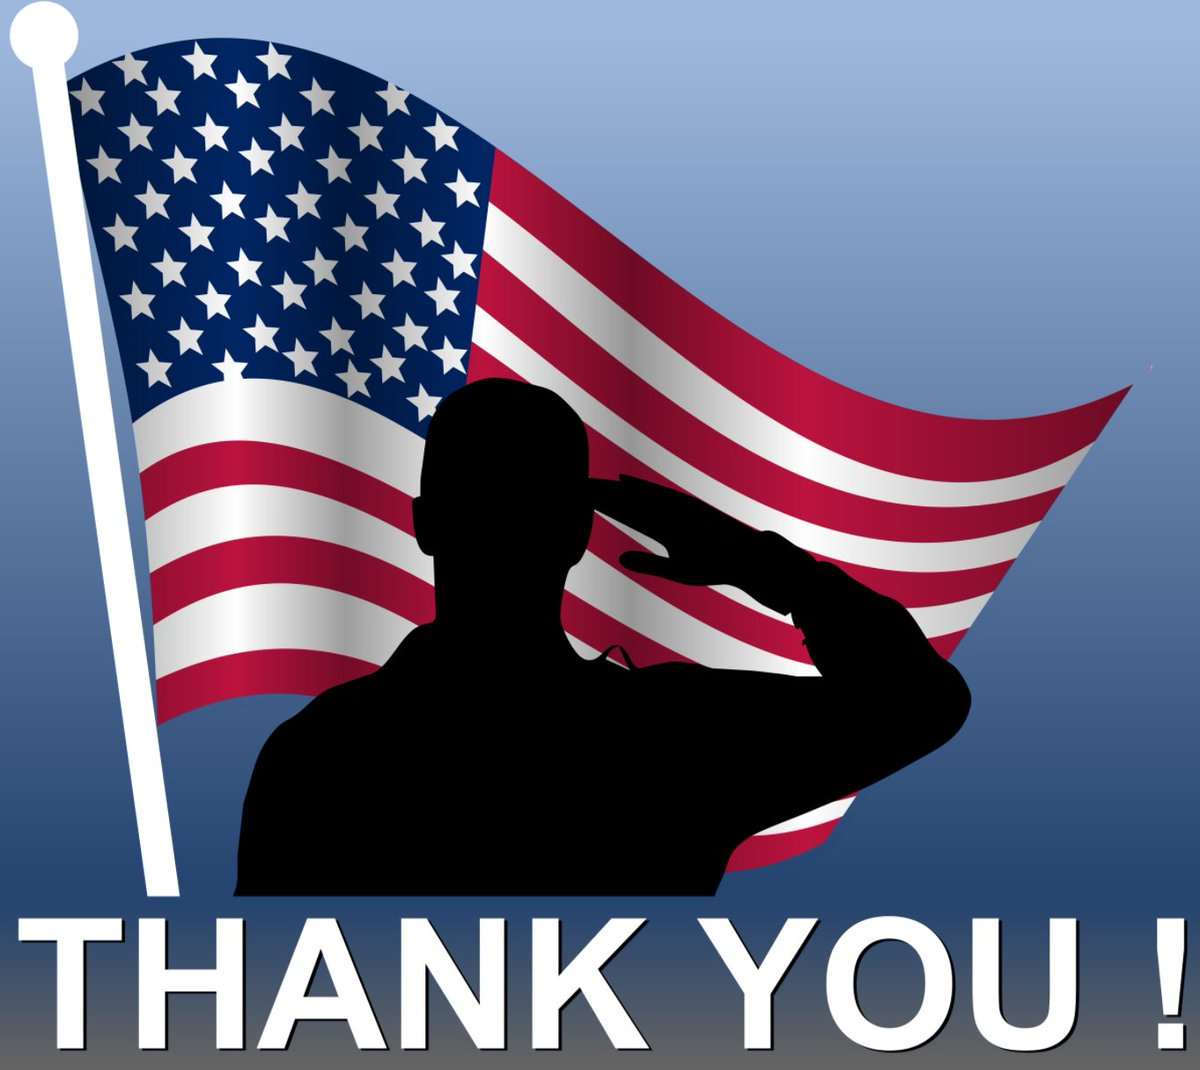 Thank you to those who serve for our #freedom &amp; #equality #MemorialDay<br>http://pic.twitter.com/OMuA9LIon8